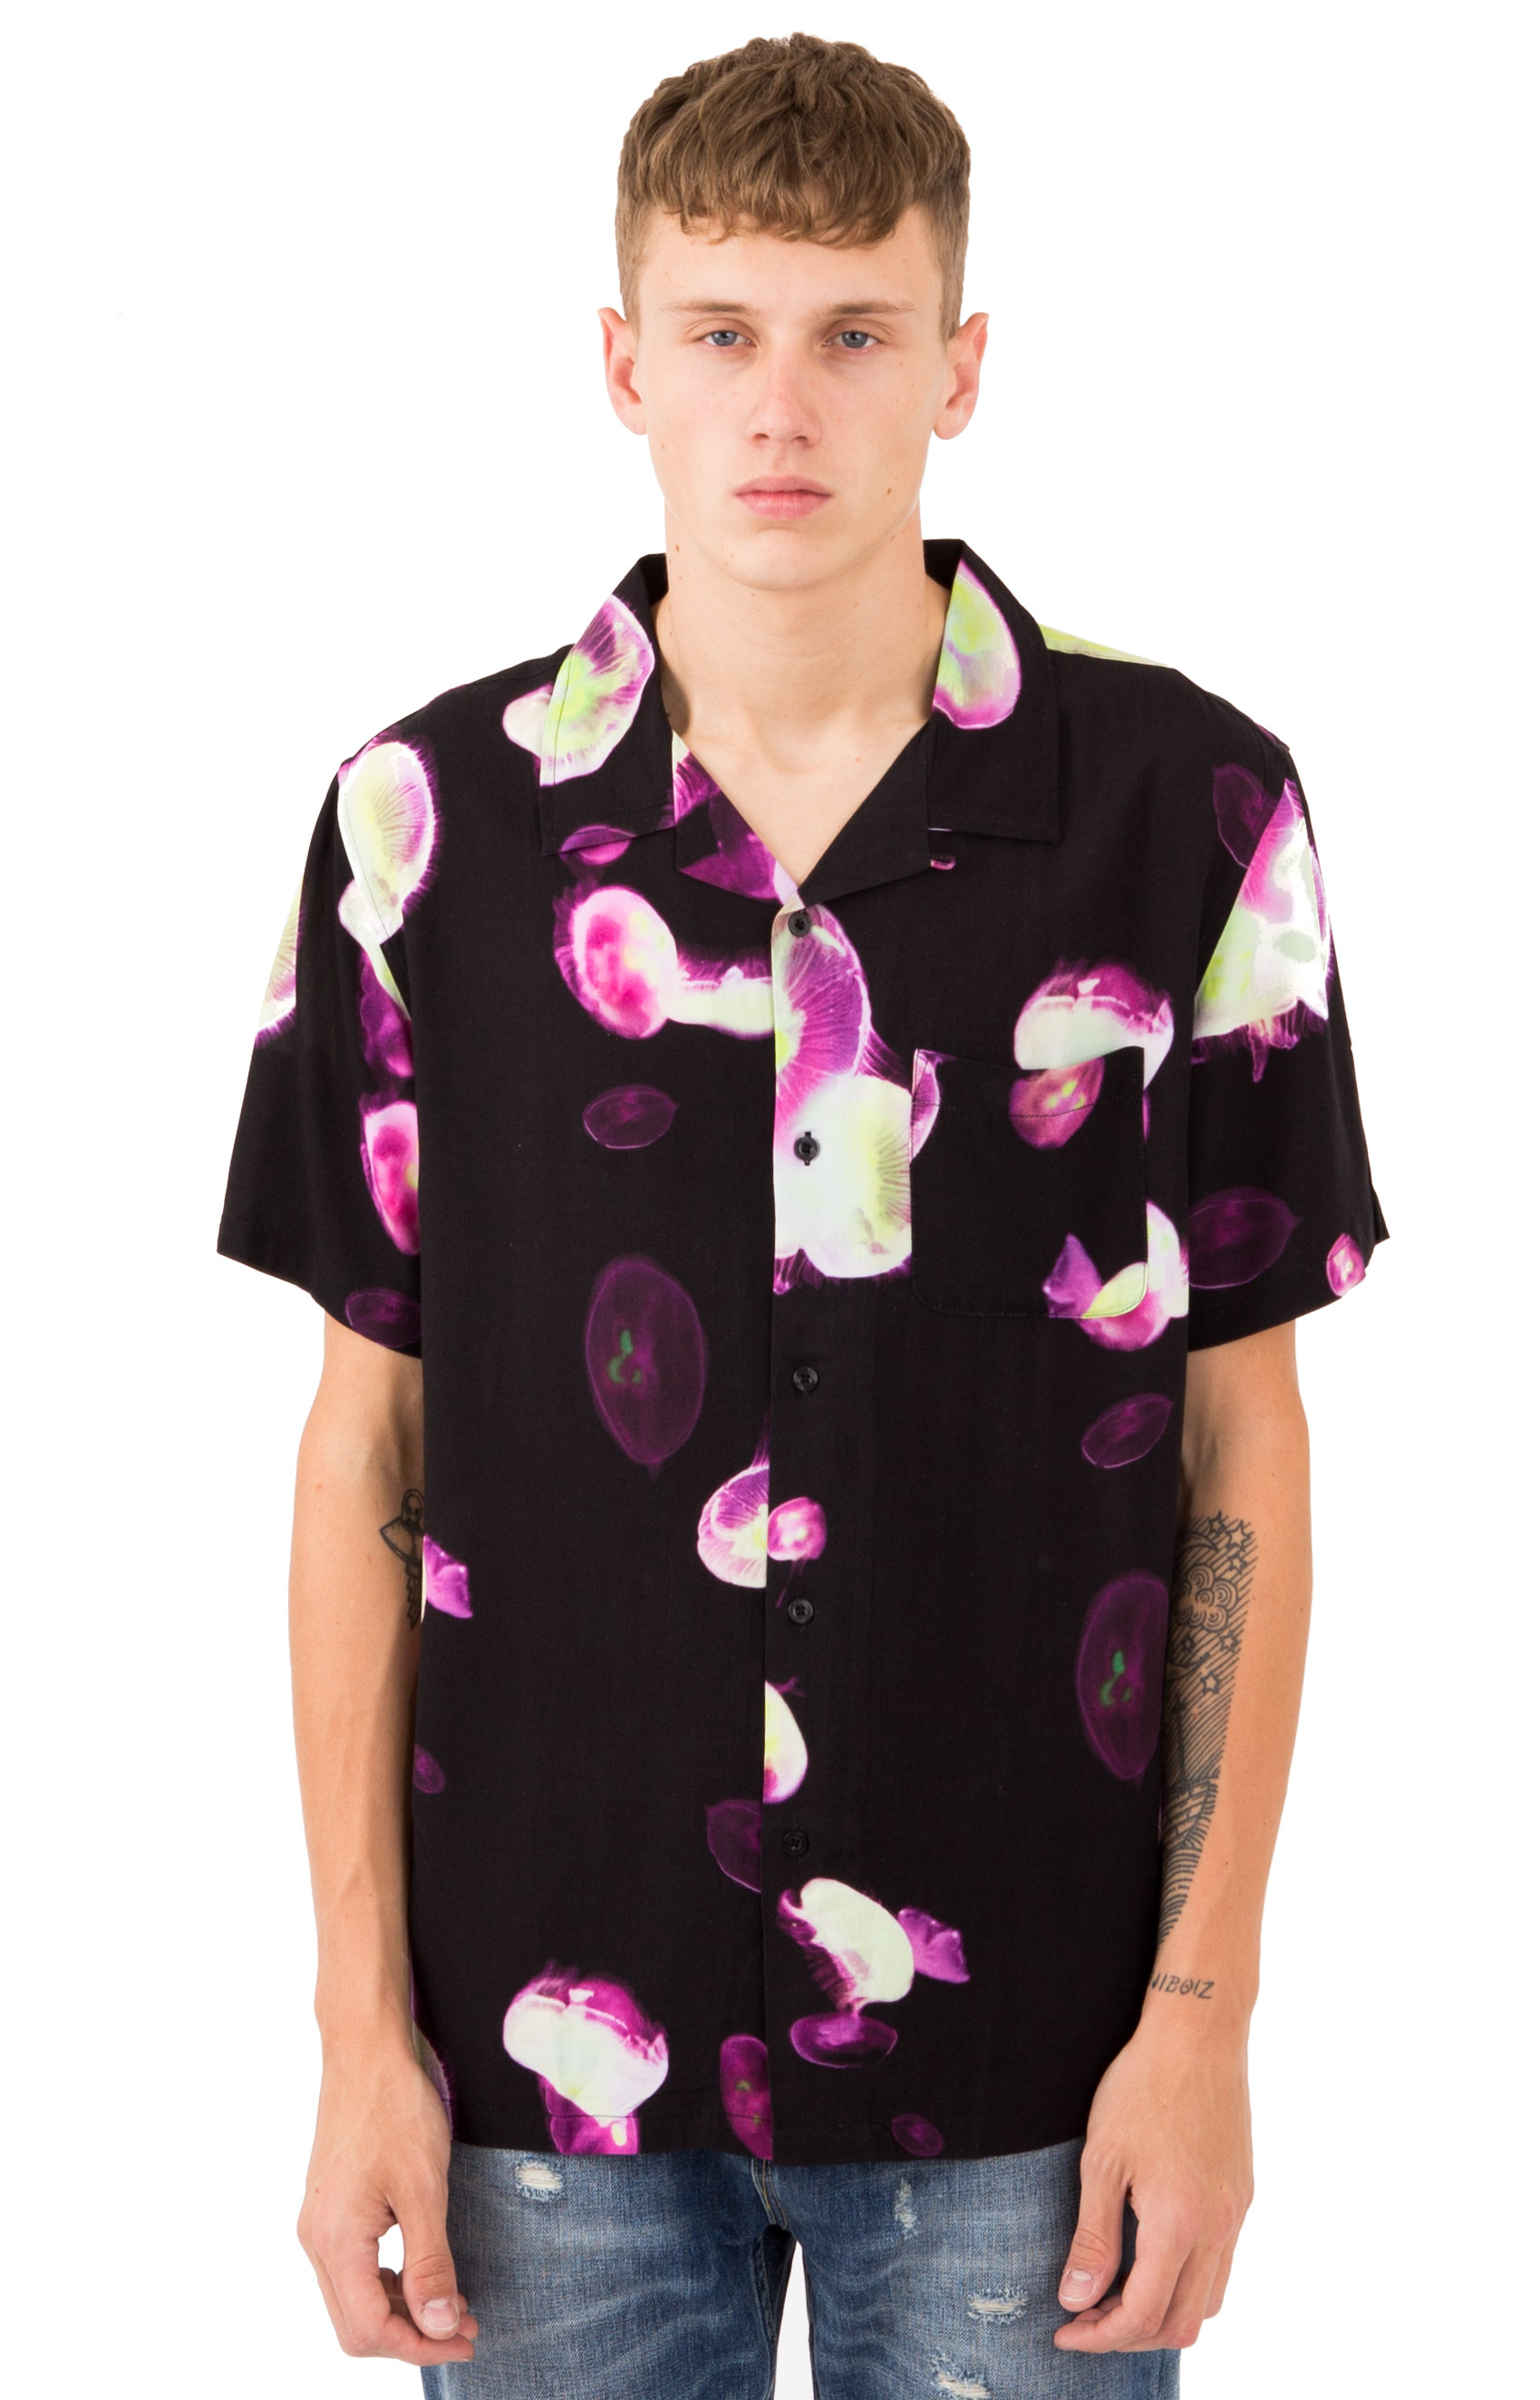 Stussy 76801 Jelly Fish Printed Button-Up Shirt - Black